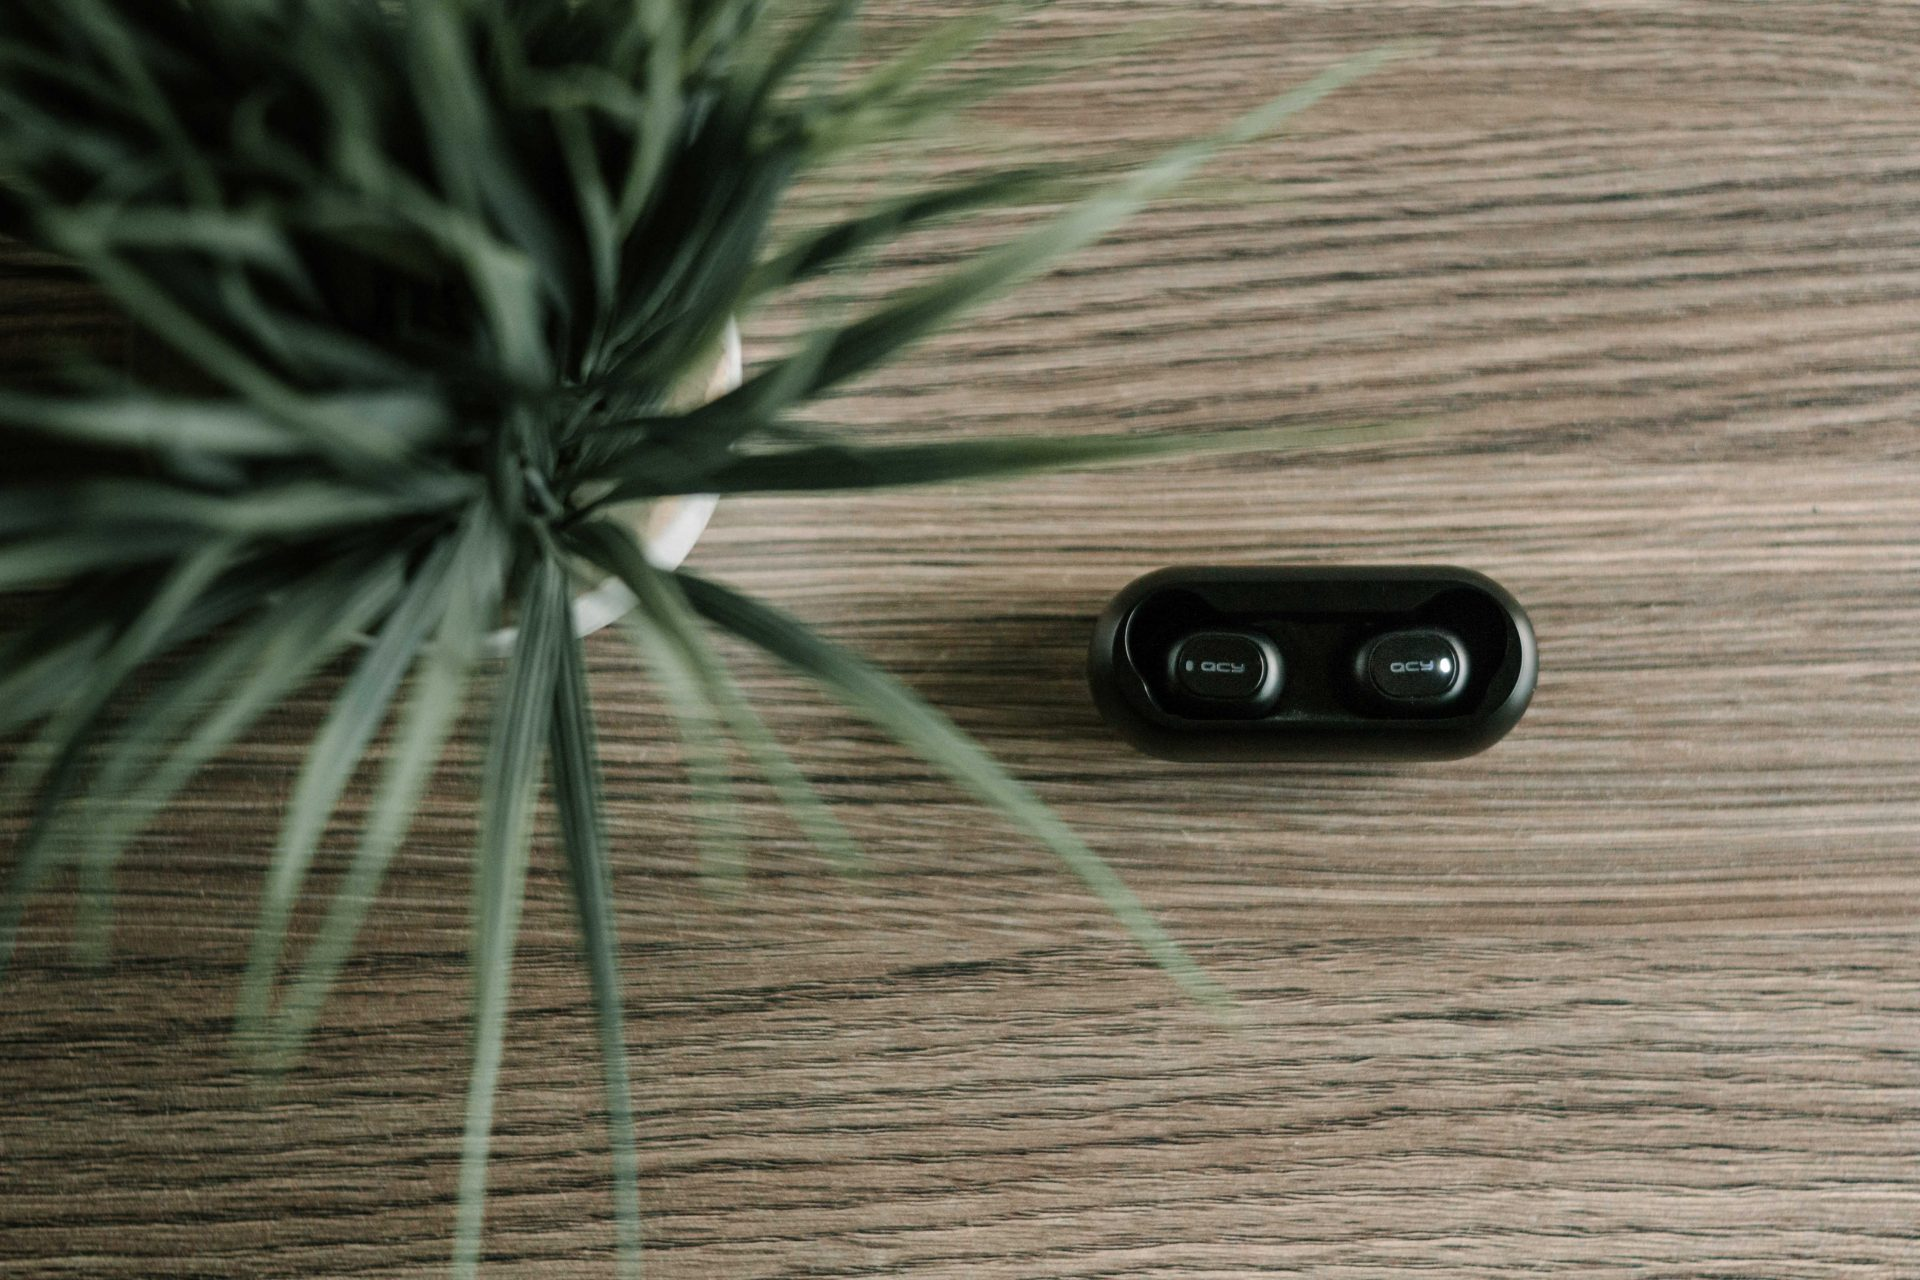 Global True Wireless Earbuds (Hearables) Market Tracker by Brand & Regions: Q3 2019